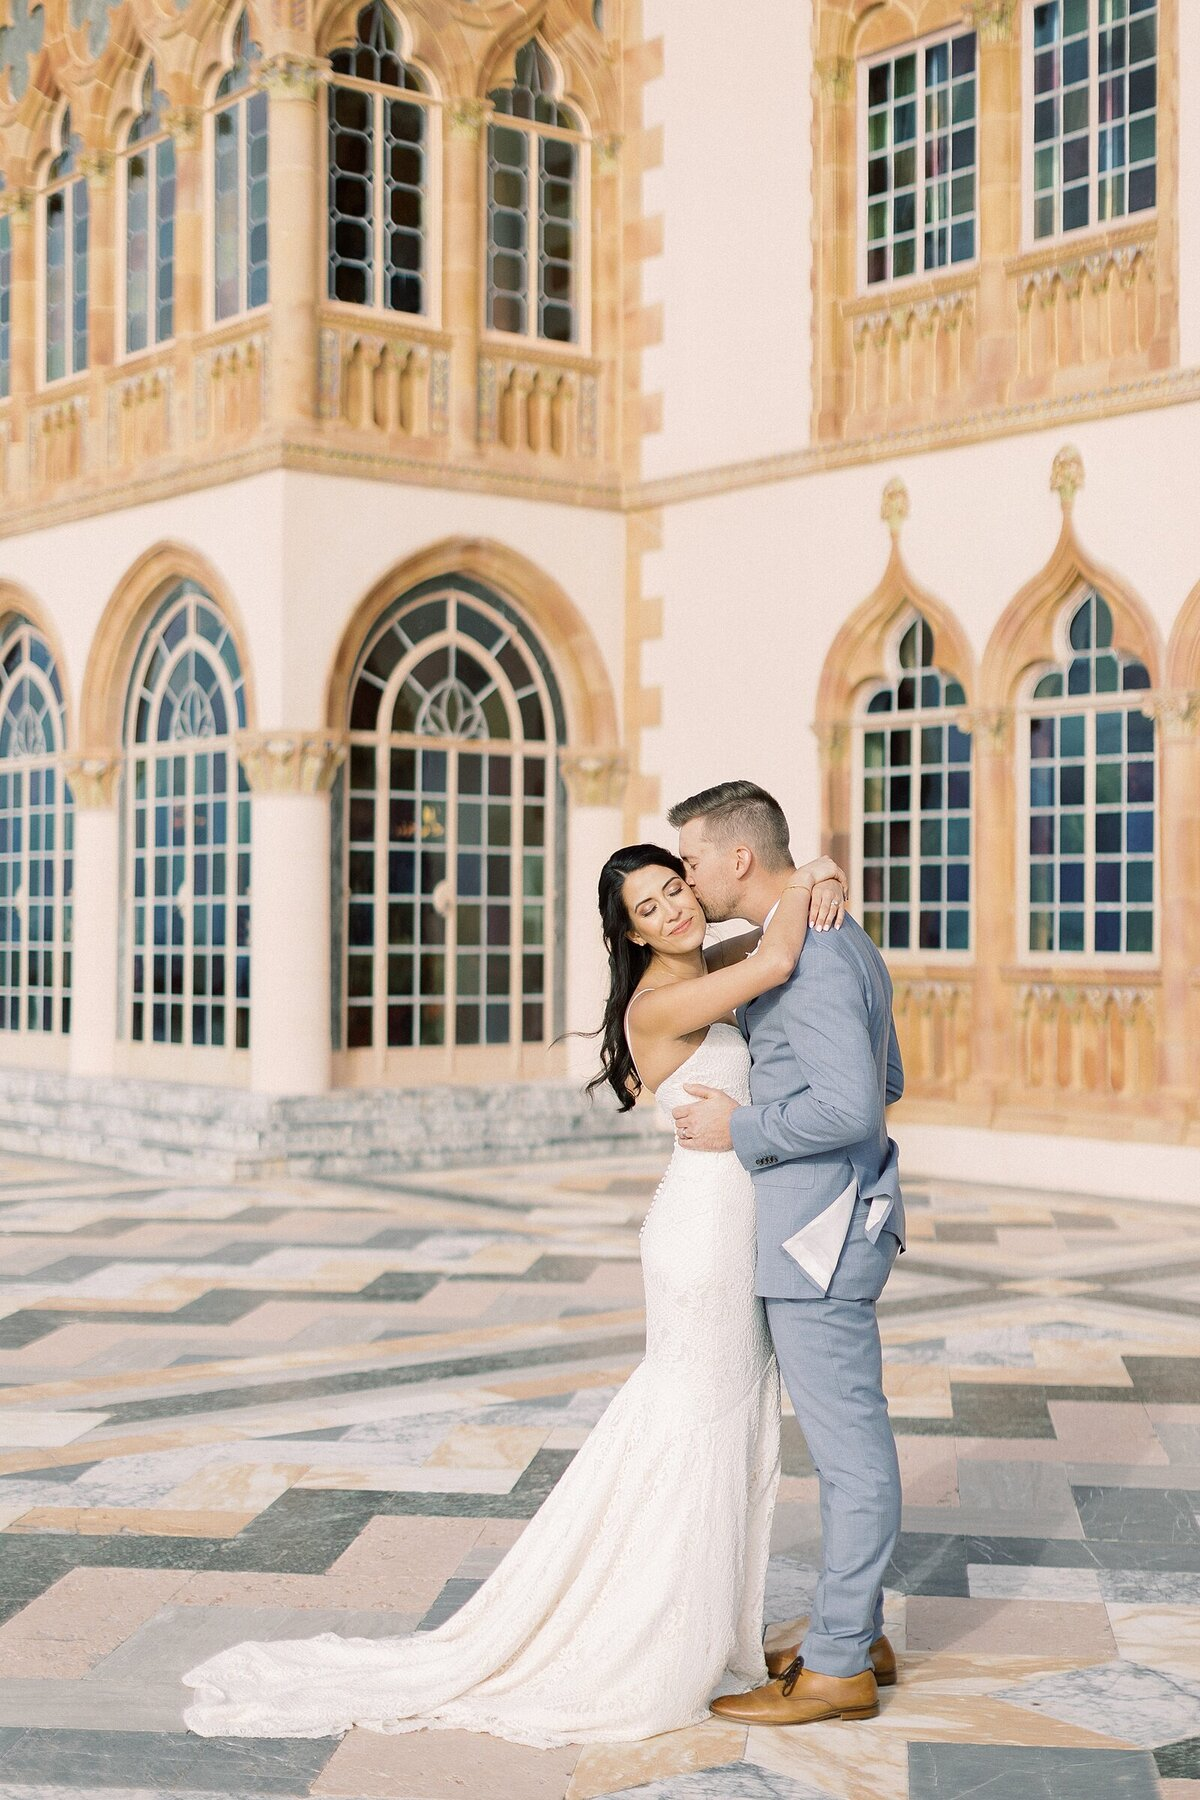 Williams-Siesta Key Florida Ringling Museum Wedding Casie Marie Photography-374